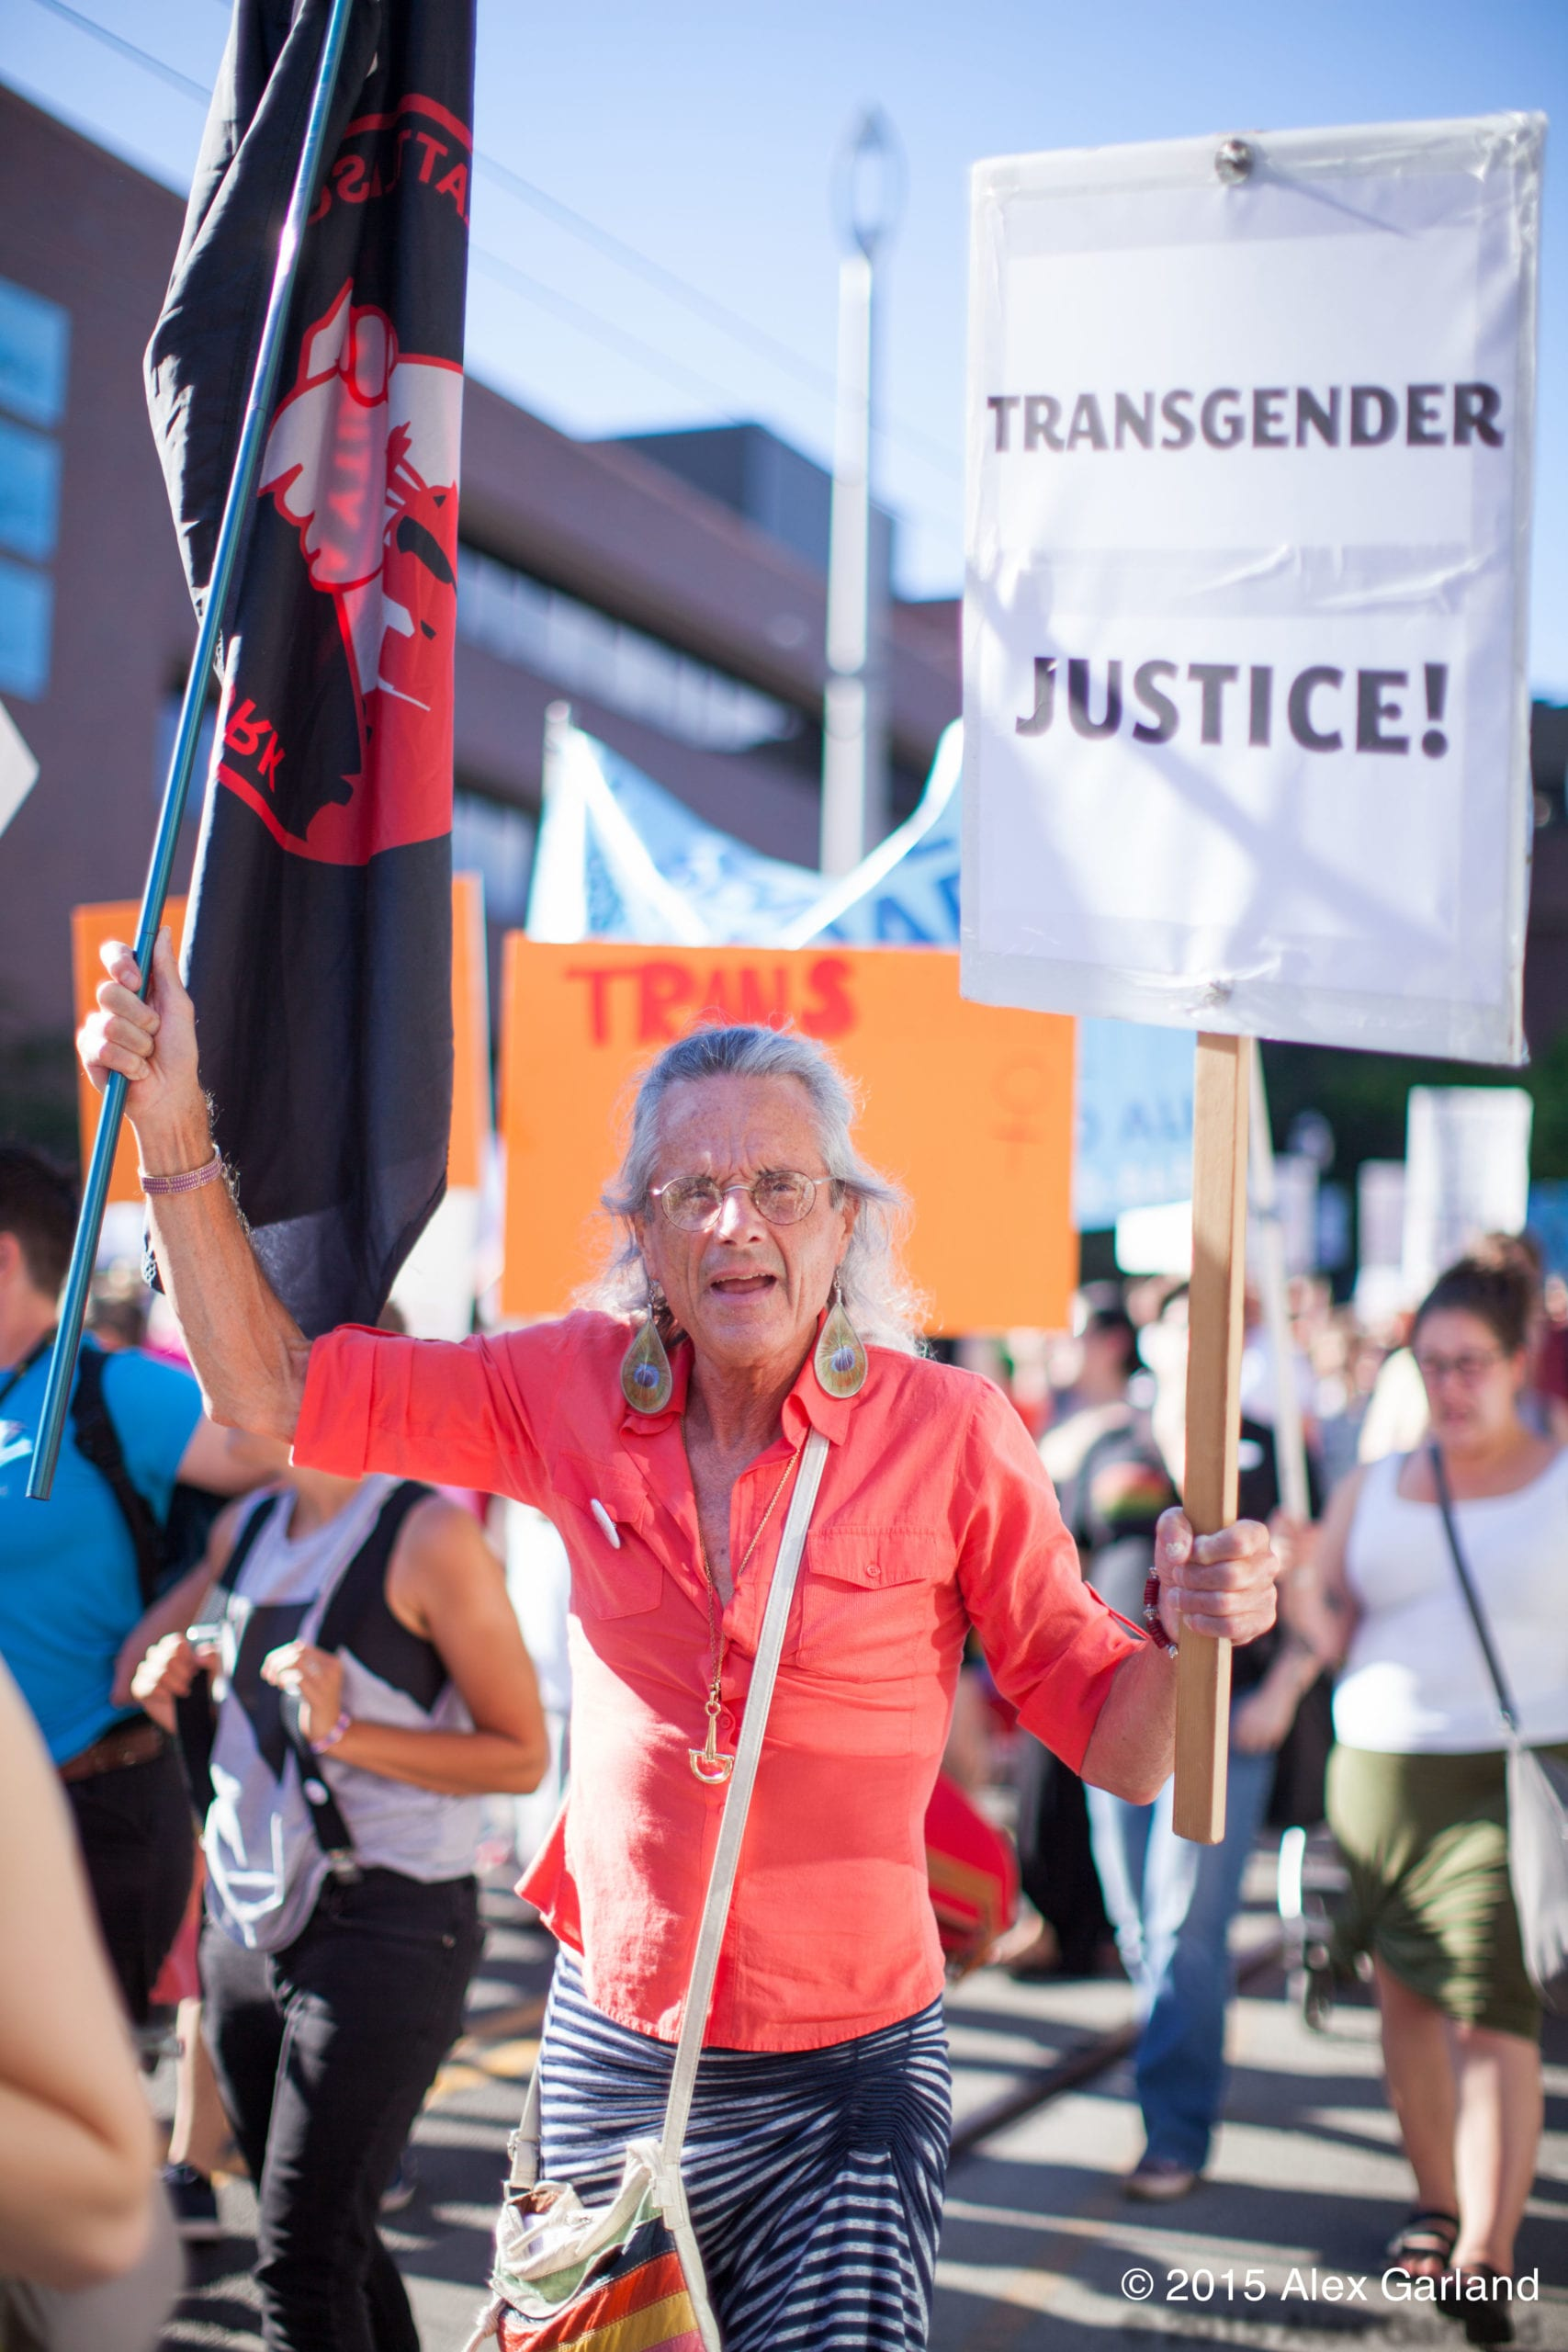 On Saturday, June 27, Chicago Gay Liberation organized a march[